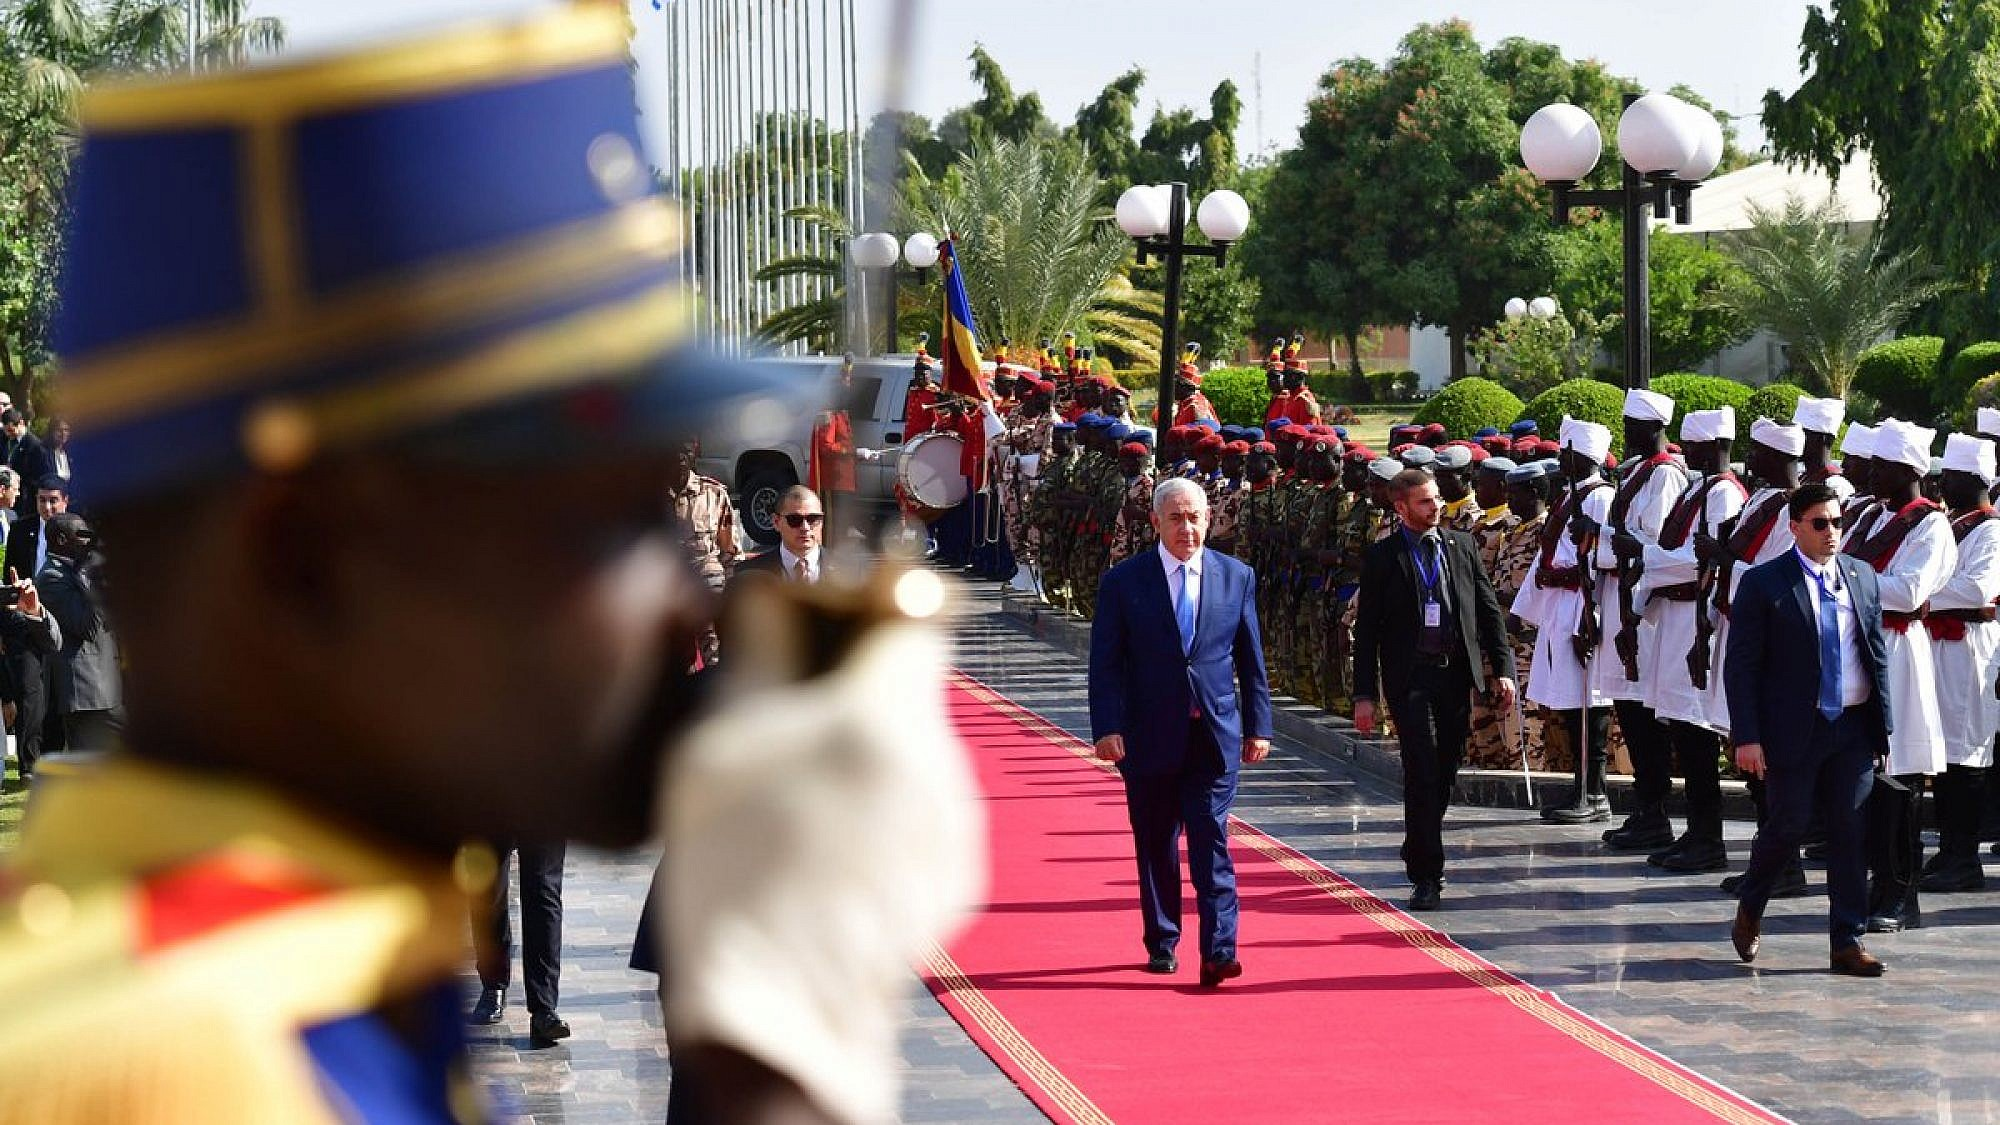 Israeli Prime Minister Benjamin Netanyahu at the Presidential Palace in Ndjamena, Chad, on Jan. 20, 2019. Credit: GPO/Kobi Gideon.